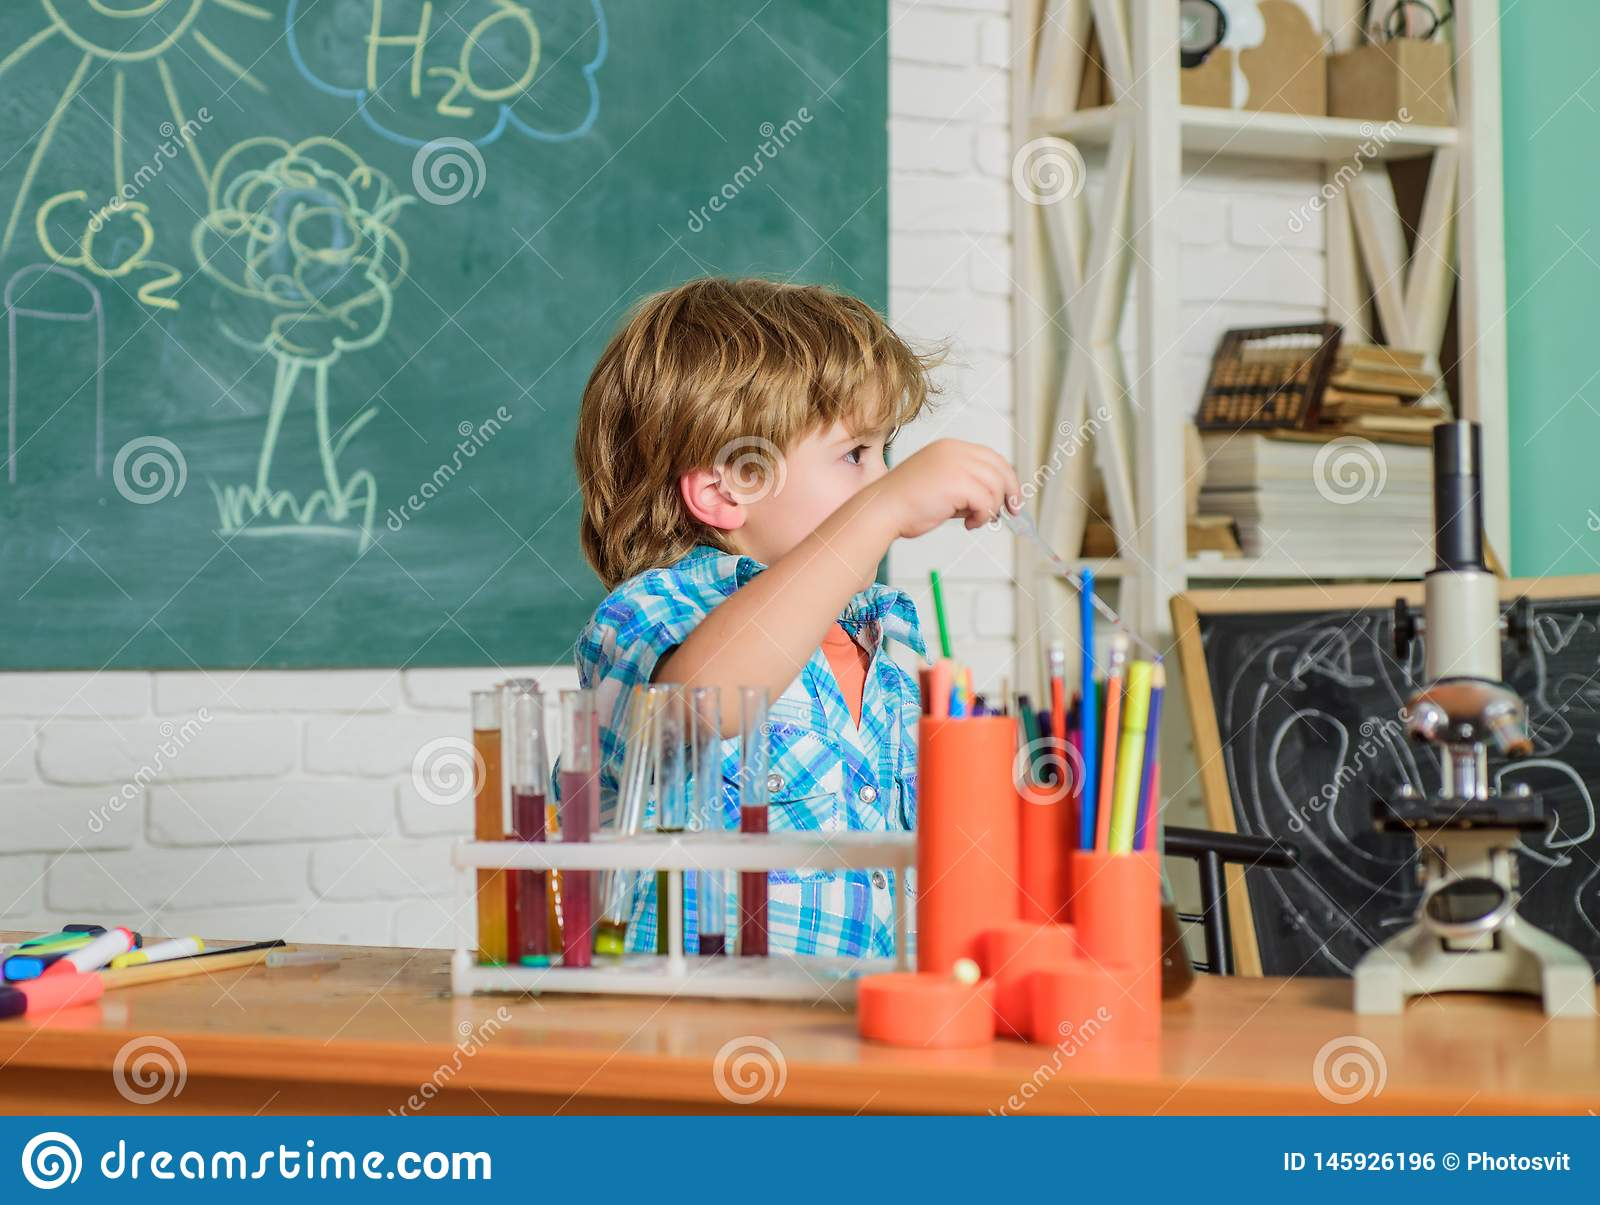 Practical knowledge. Basic knowledge. Study hard. Measurable outcomes. Child care and development. Critical thinking and